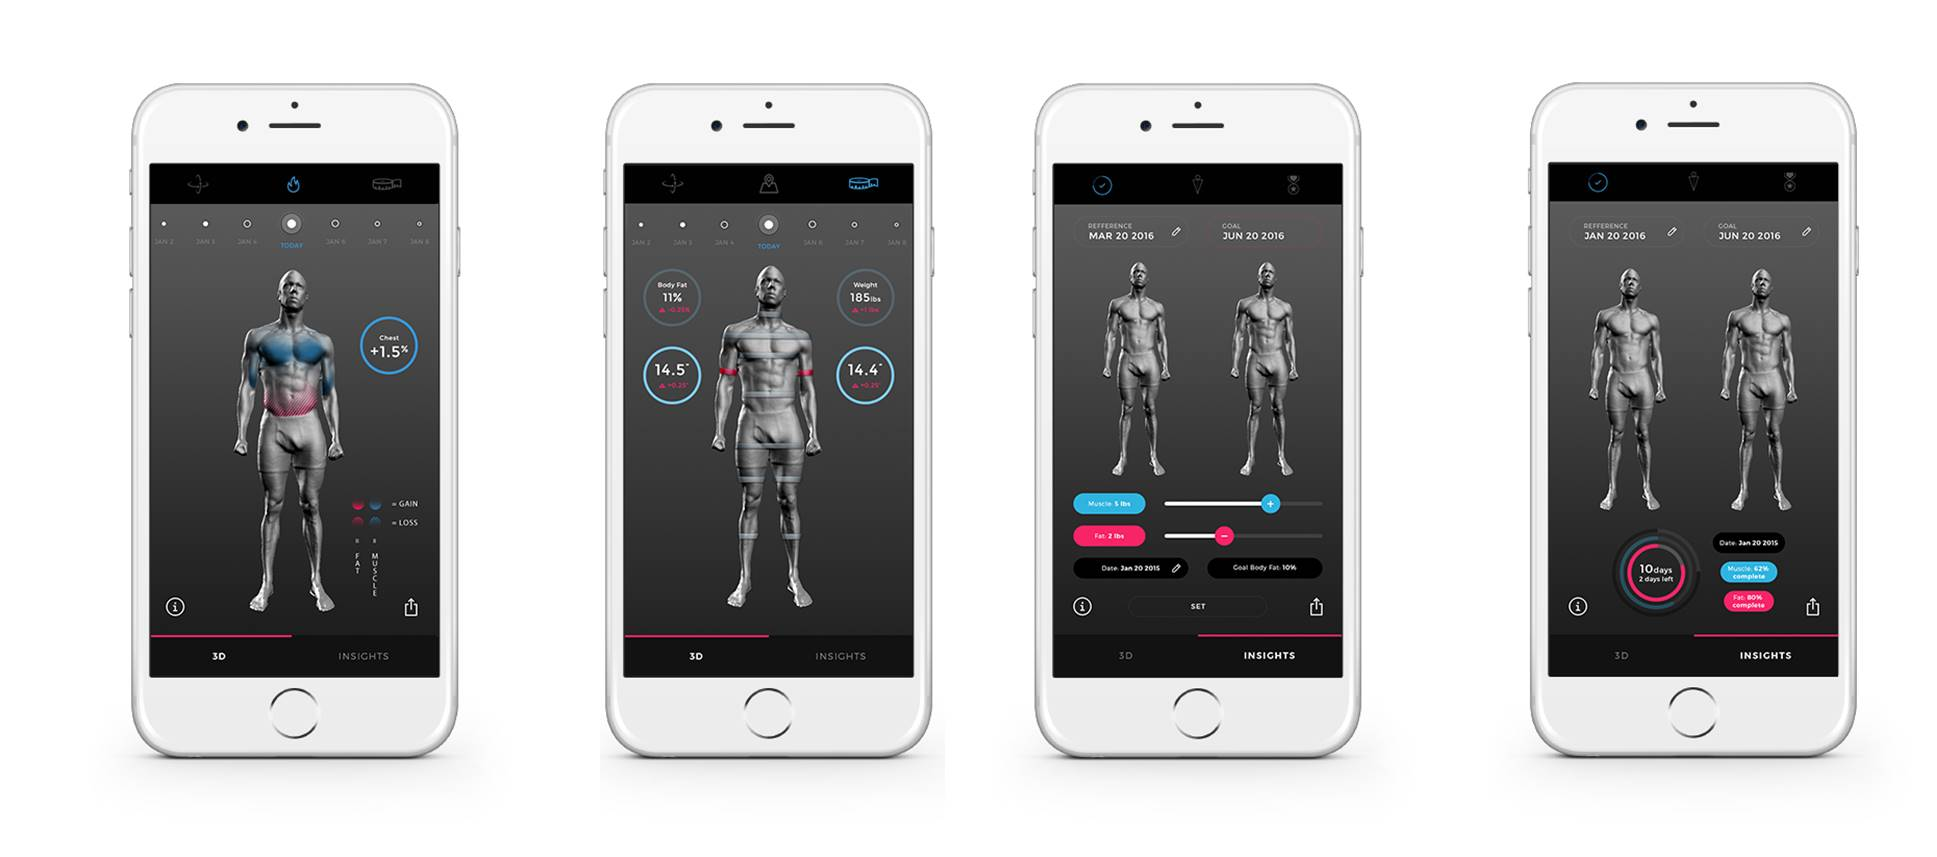 fitness tracking app Naked tracking body measurements over time